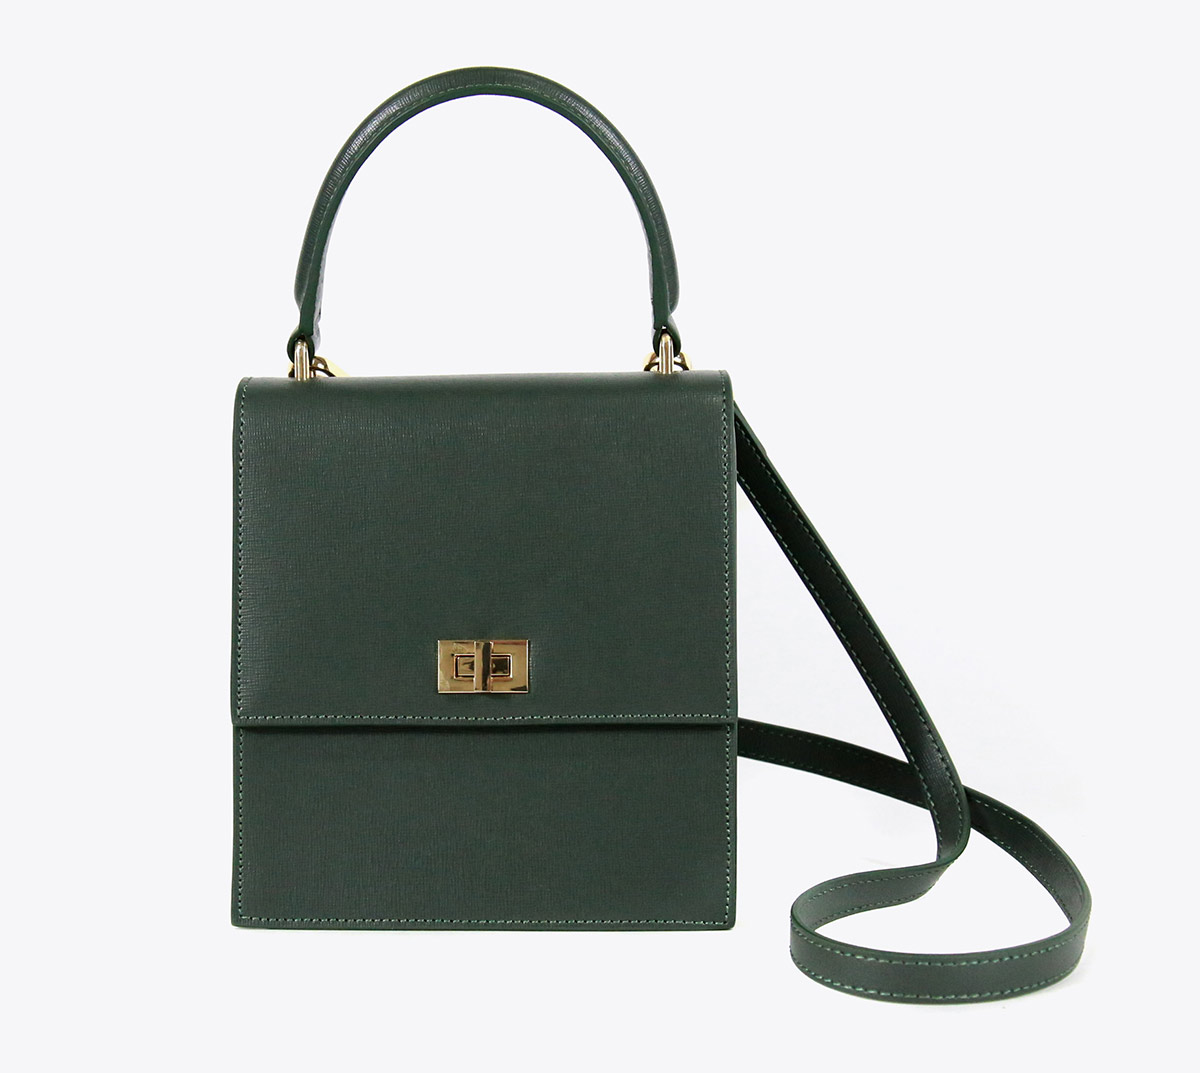 Neely and Chloe Saffiano Lady Bag Green front view with strap